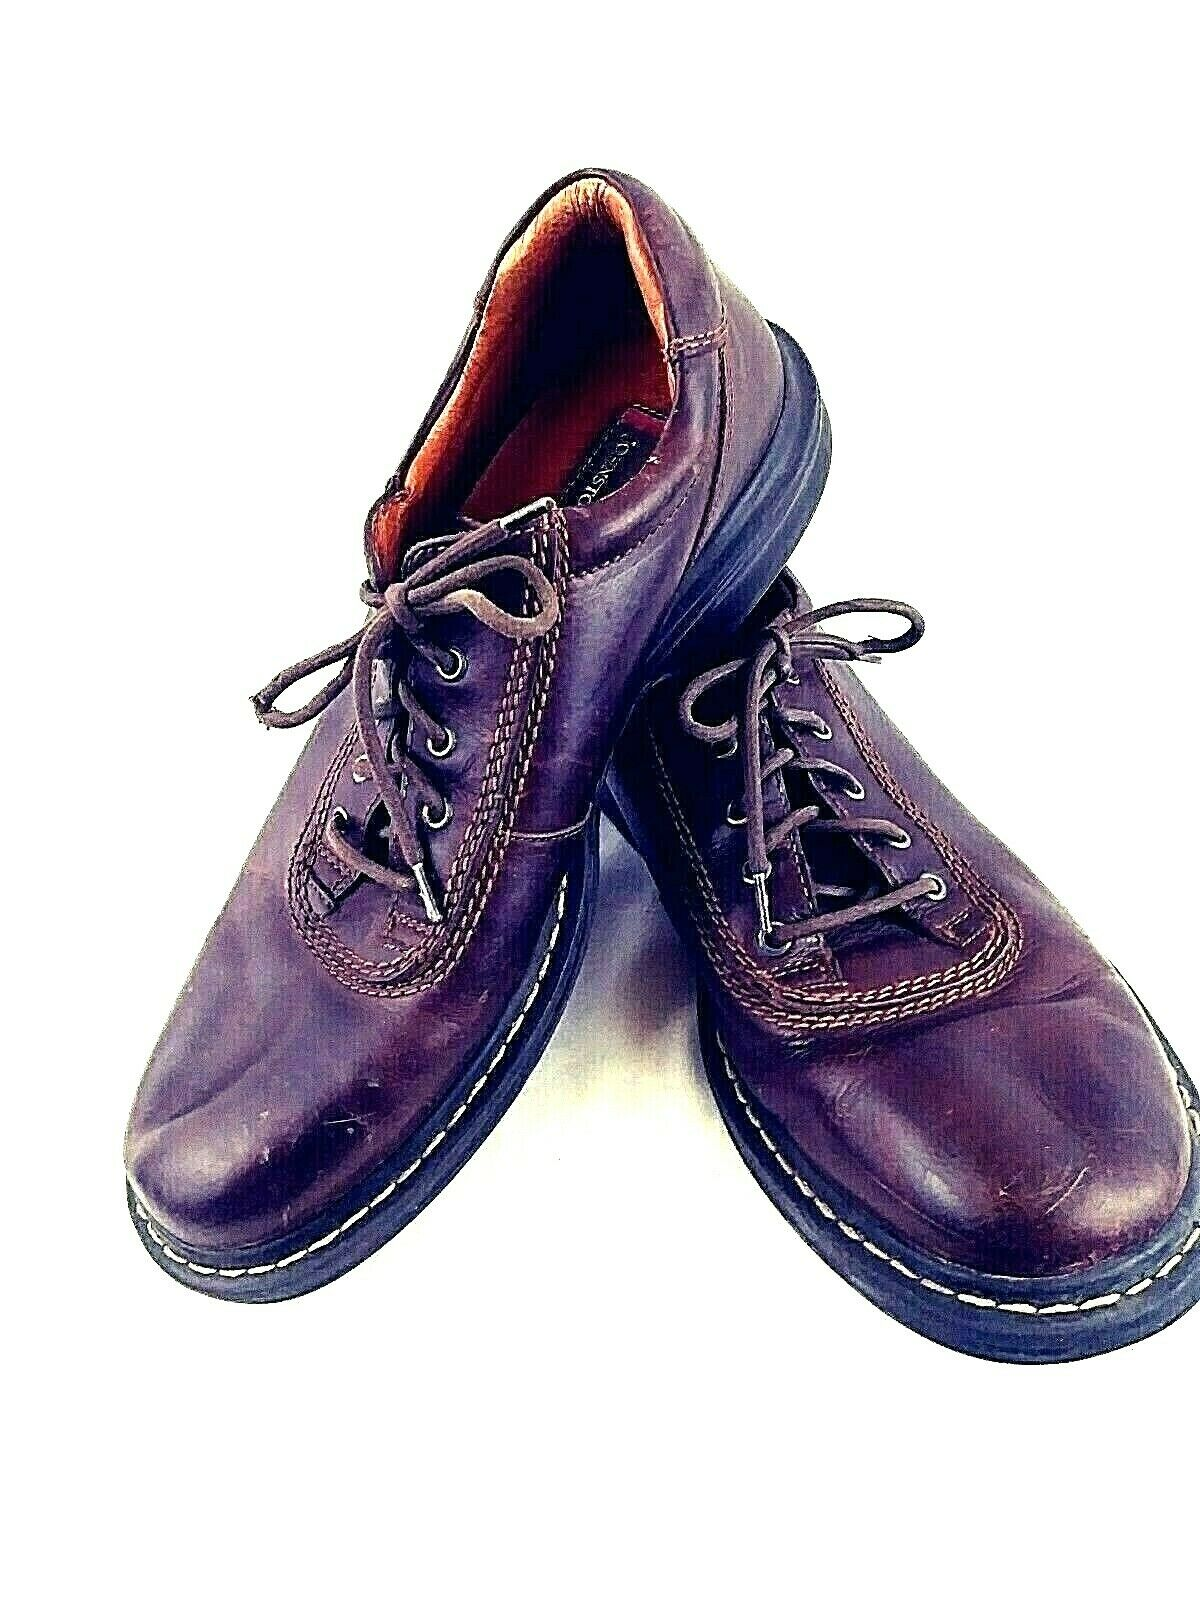 Johnston & Murphy Men's 10.5 M Brown Leather Lace Up Oxford Shoes